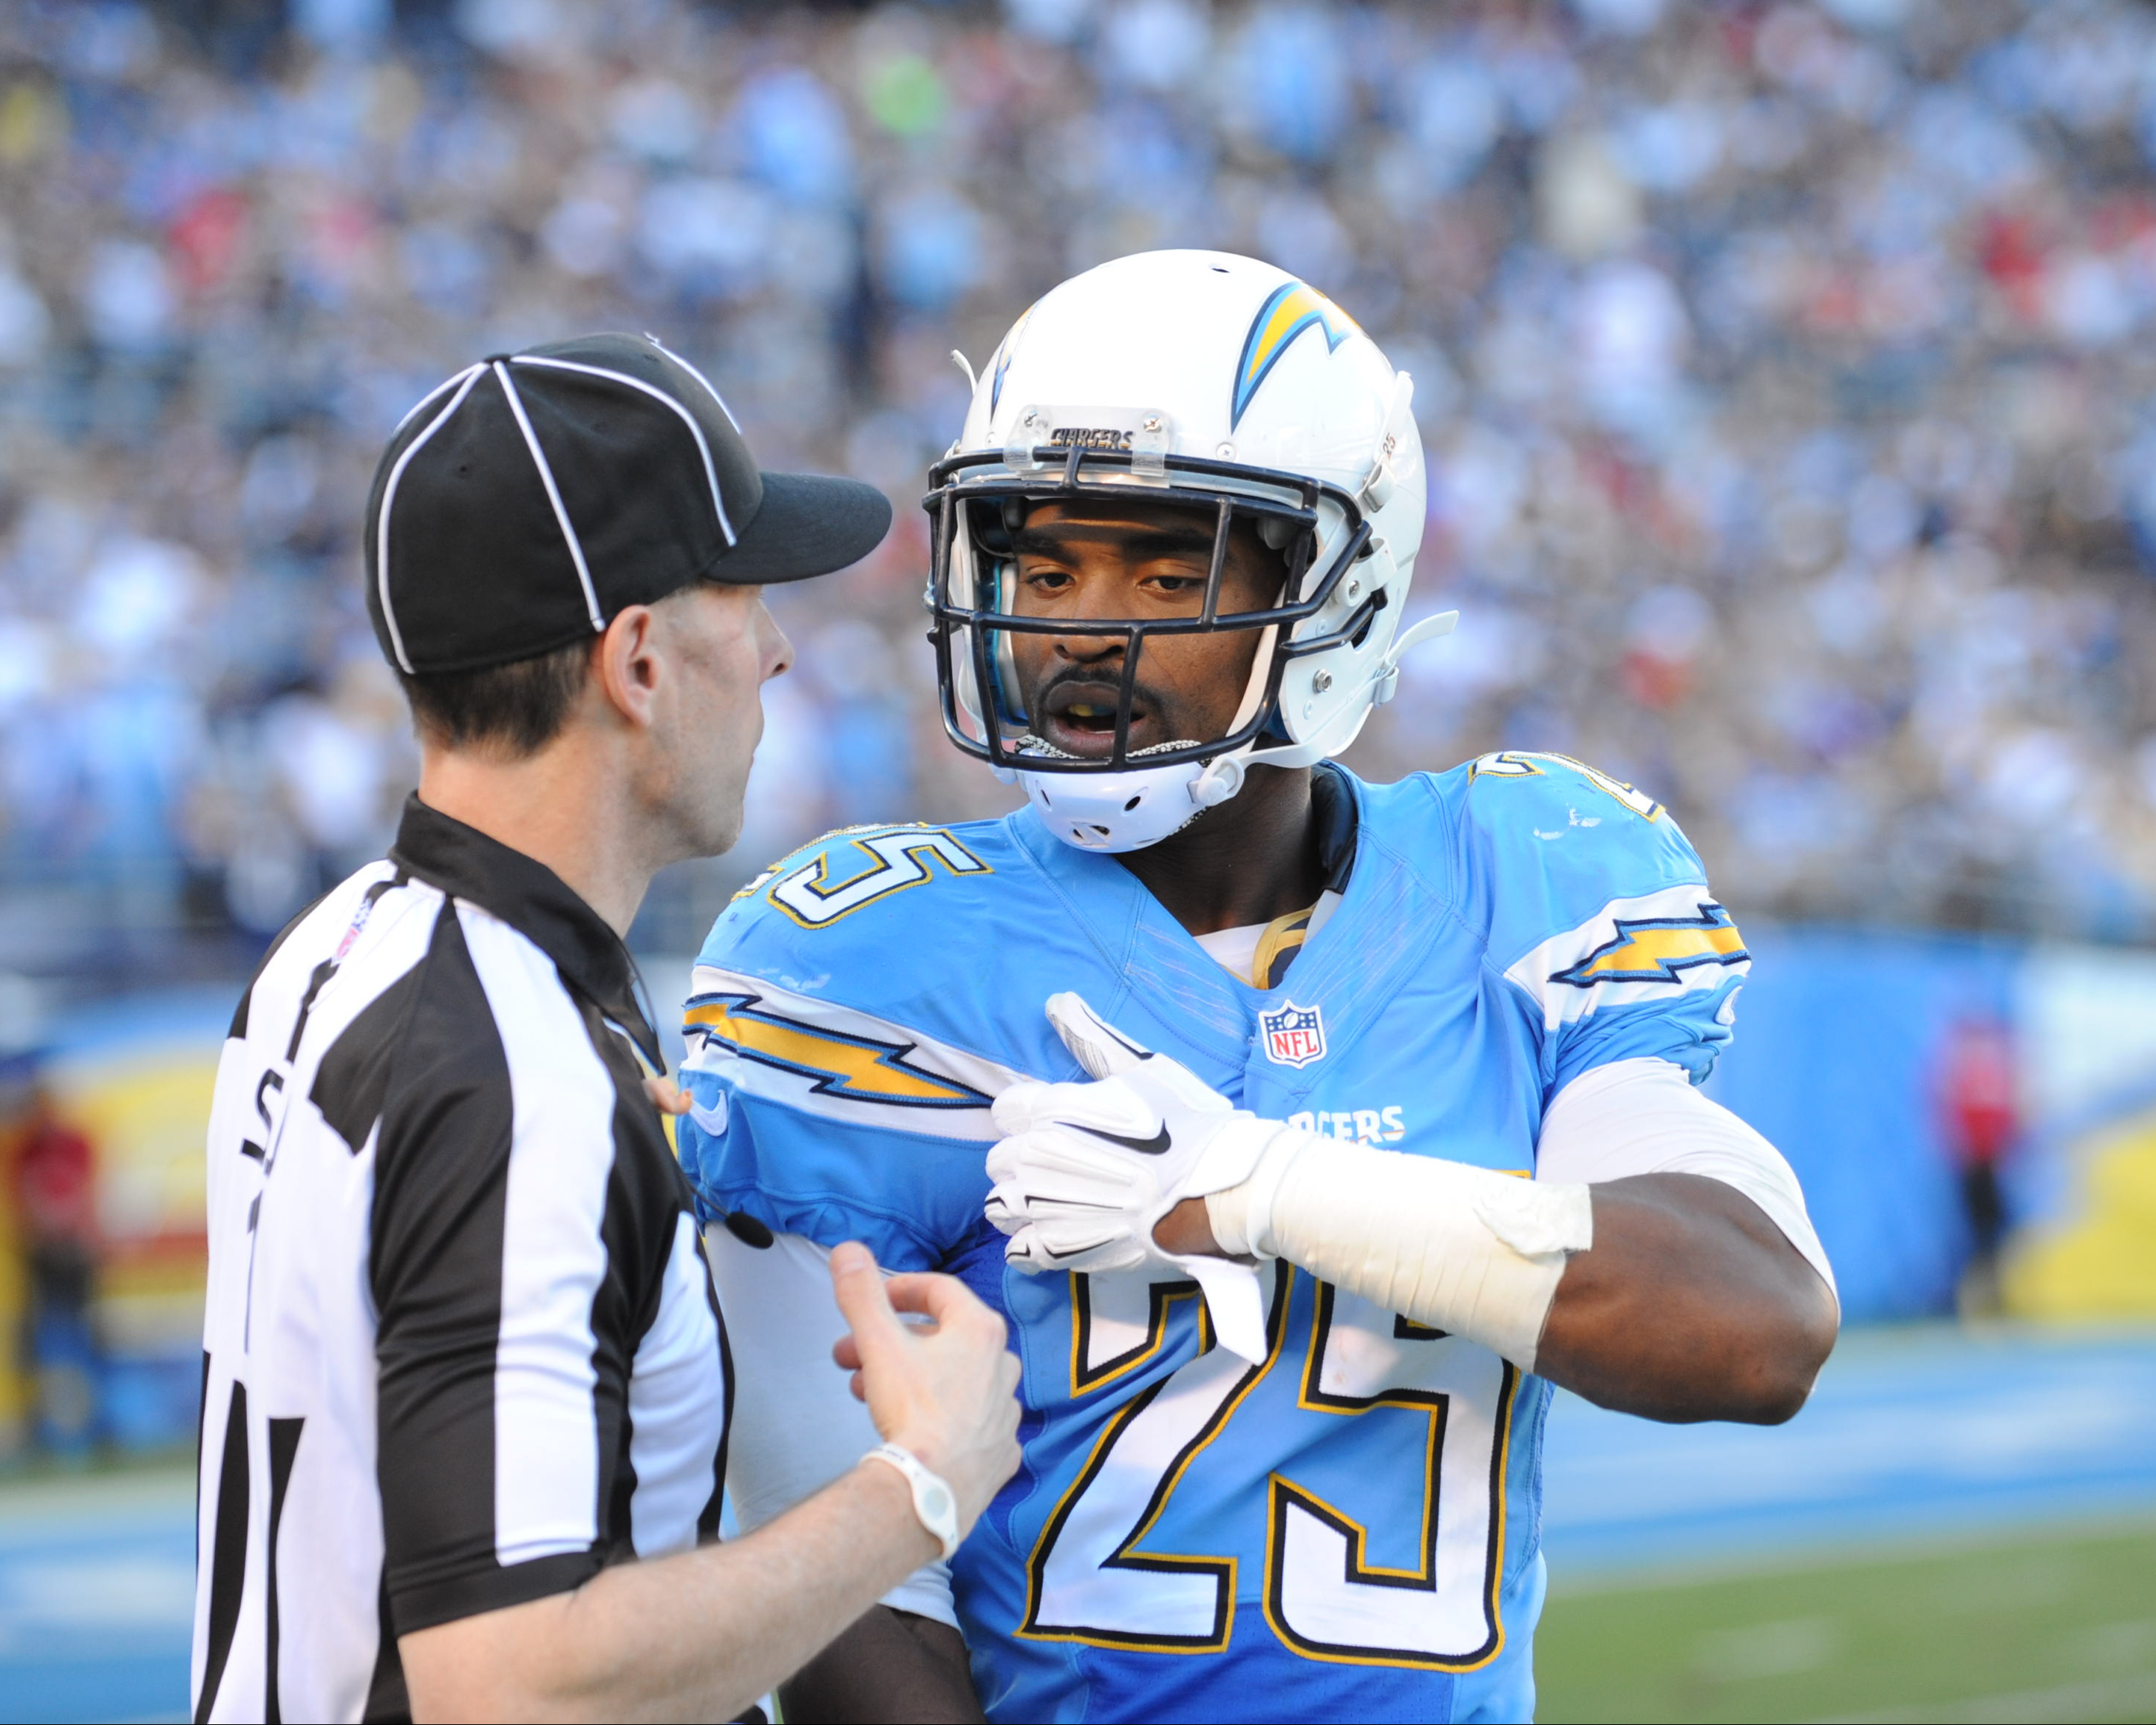 El jugador de los Chargers Darrell Stuckey durante un partido de la NFL . (Crédito: Tom Walko/iconSportswire) Corbis via Getty Images)